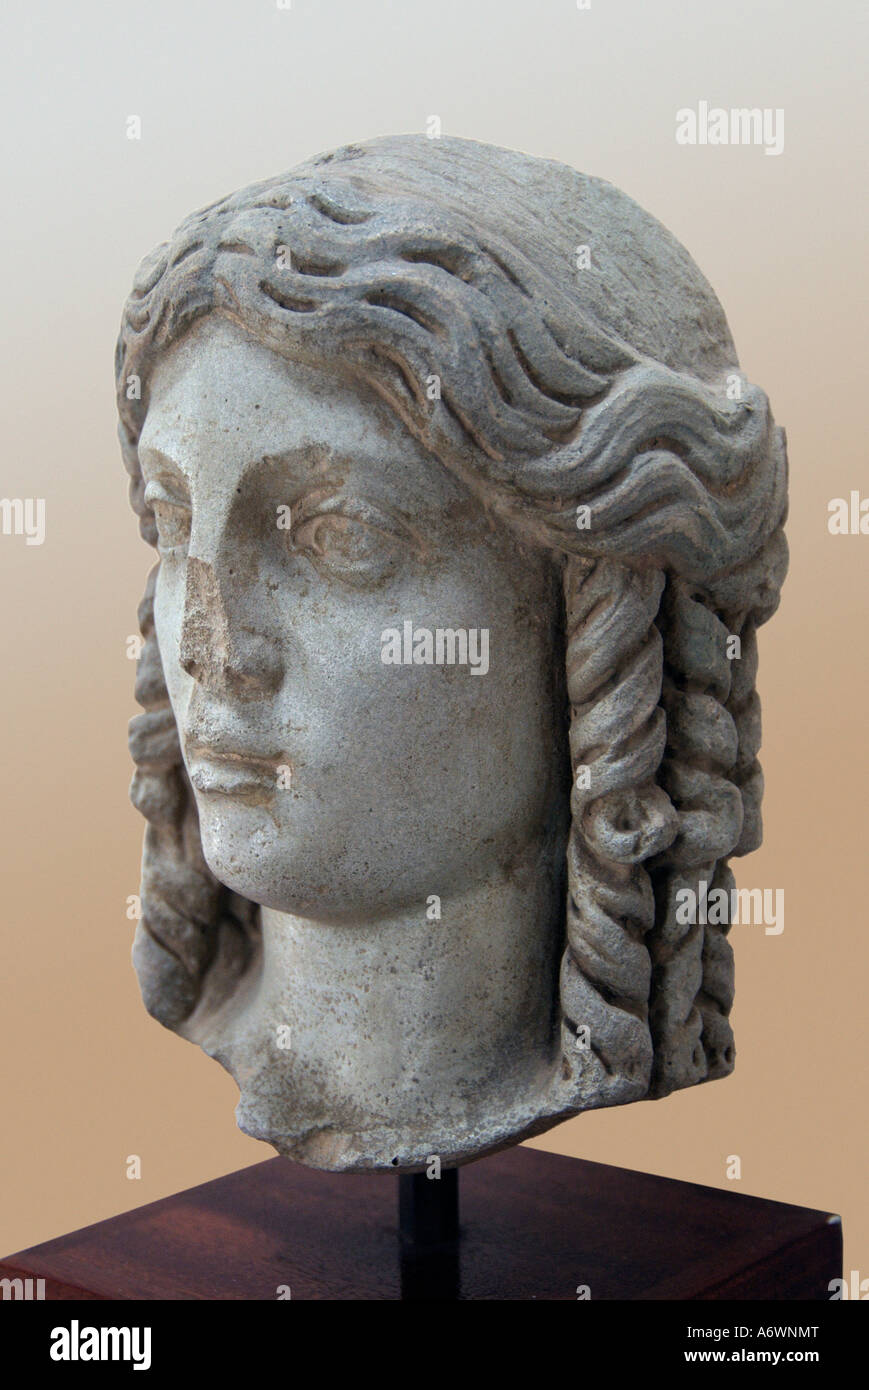 Aphrodite afrodite love god goddess woman head bust marble roman empire Hellenistic hellen paphos pafos myth mythology - Stock Image